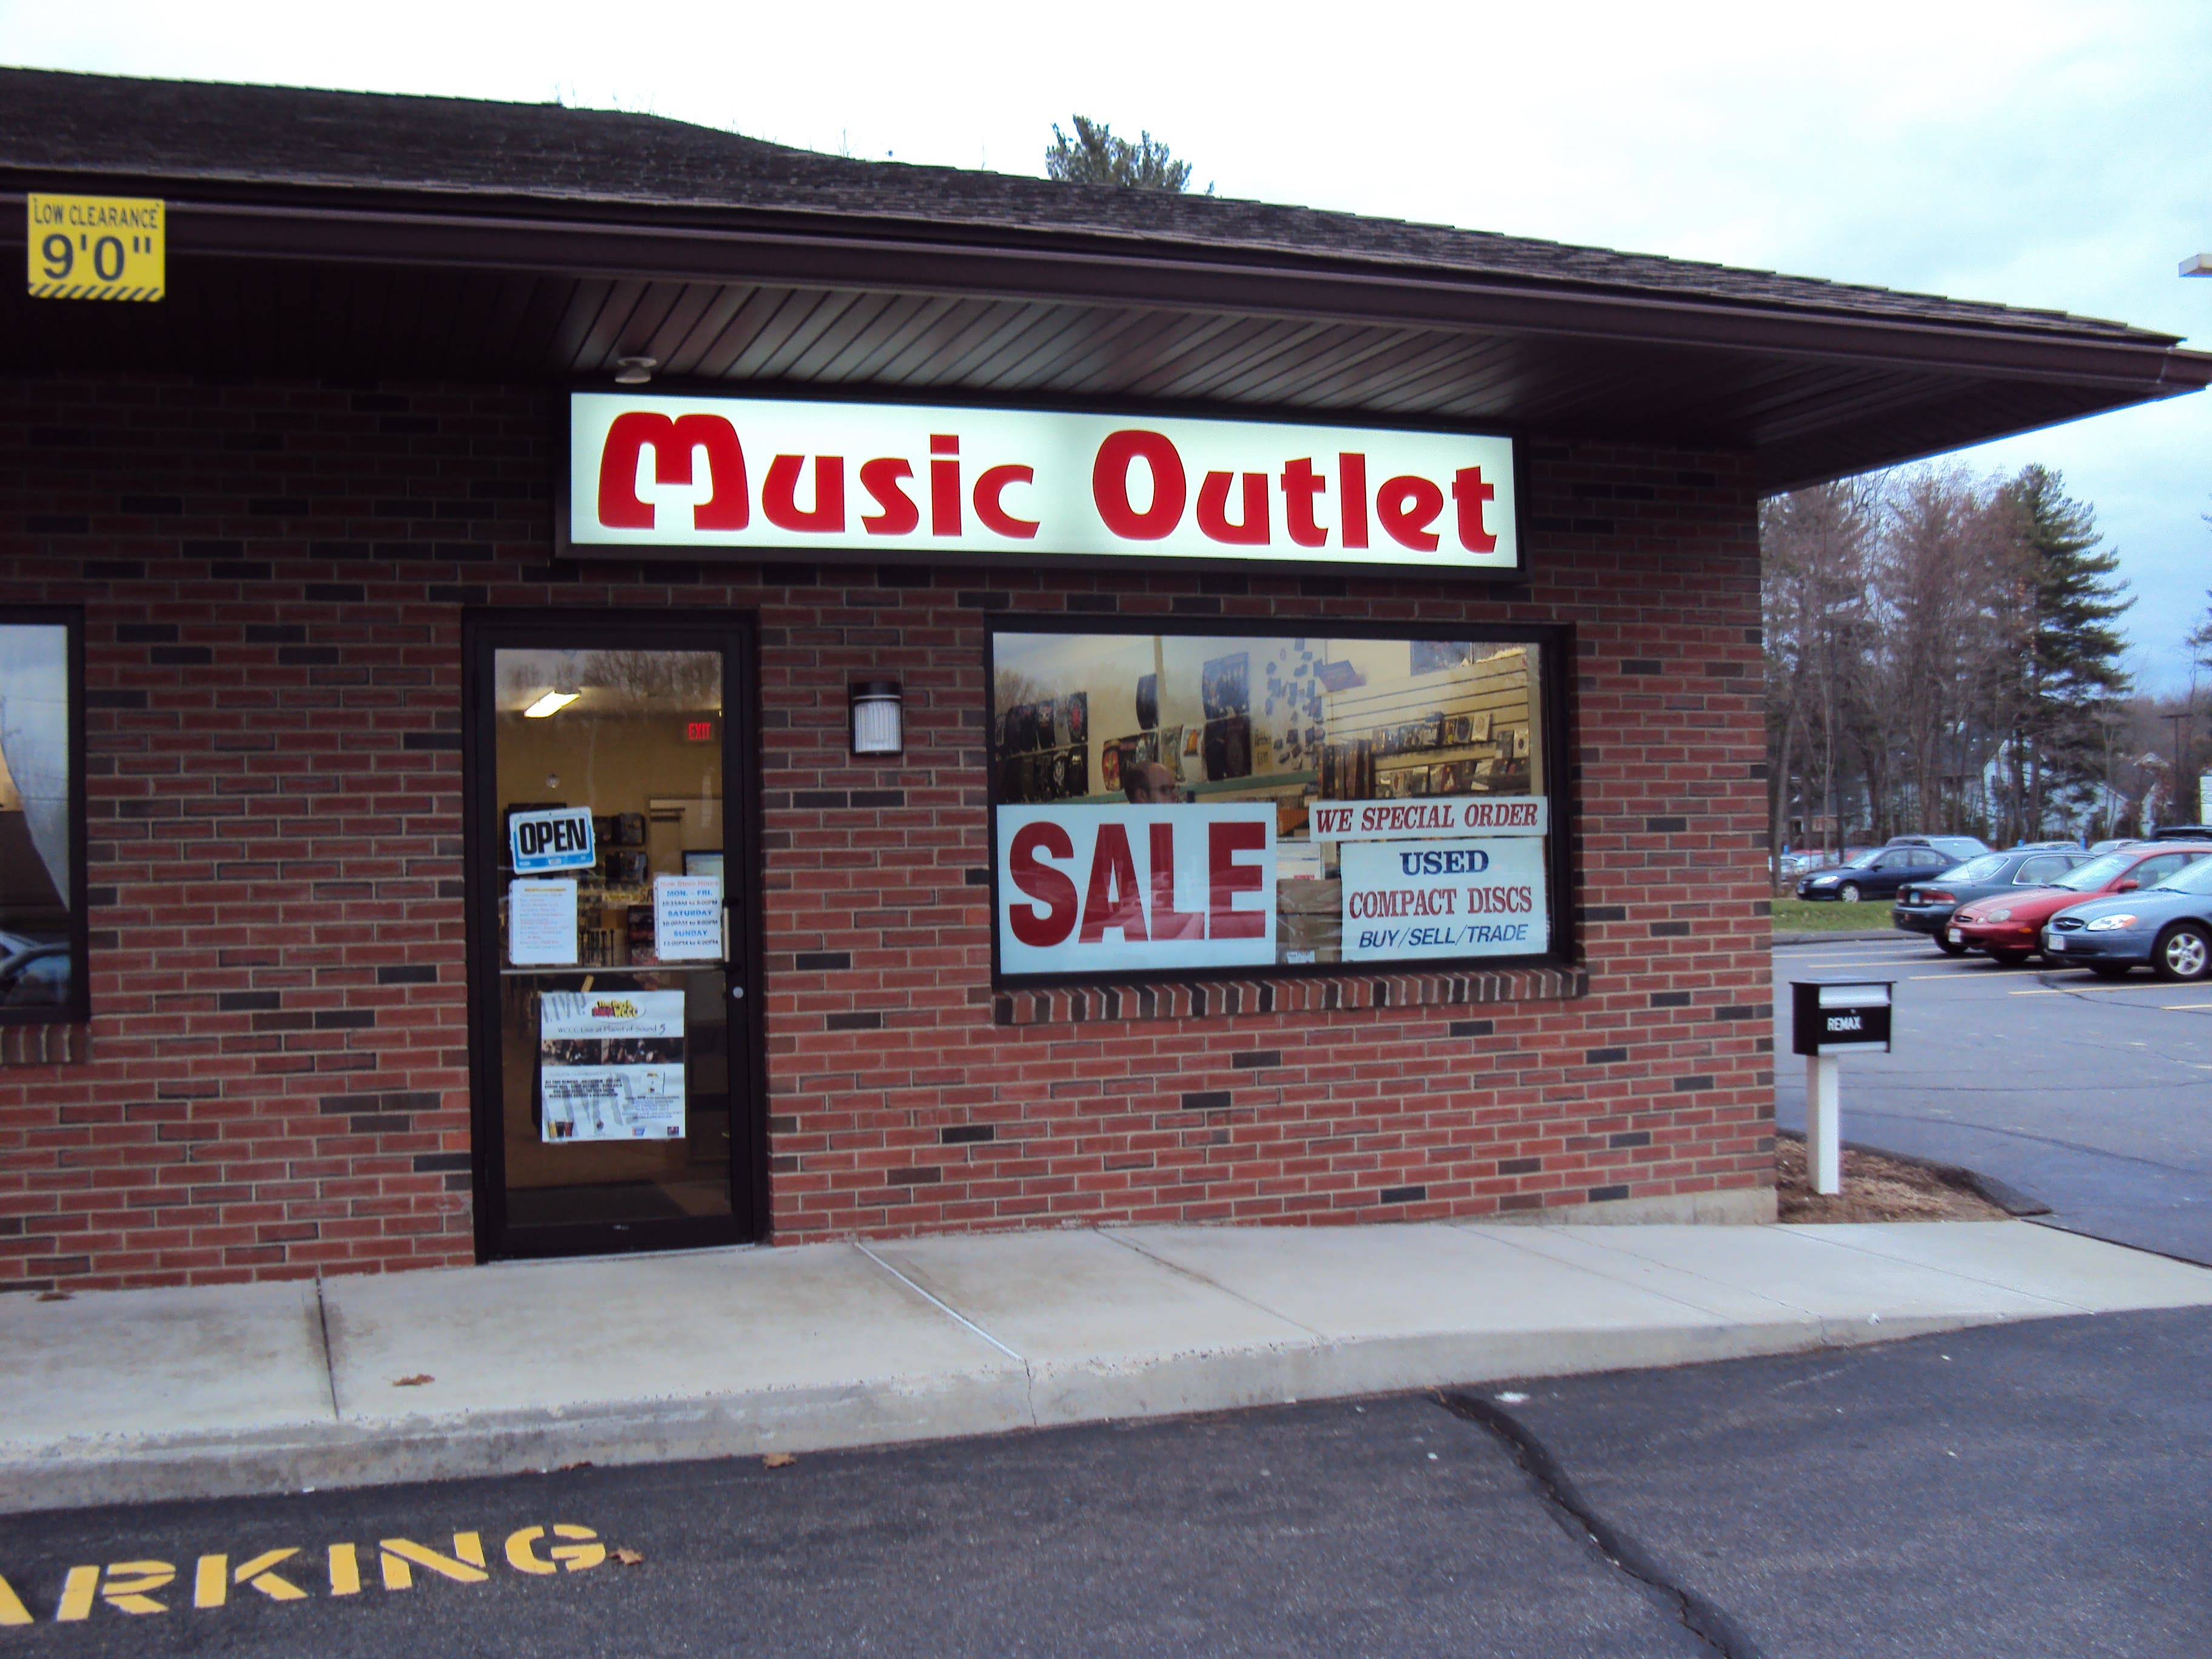 Business Spotlight - Music Outlet | Enfield, CT Patch